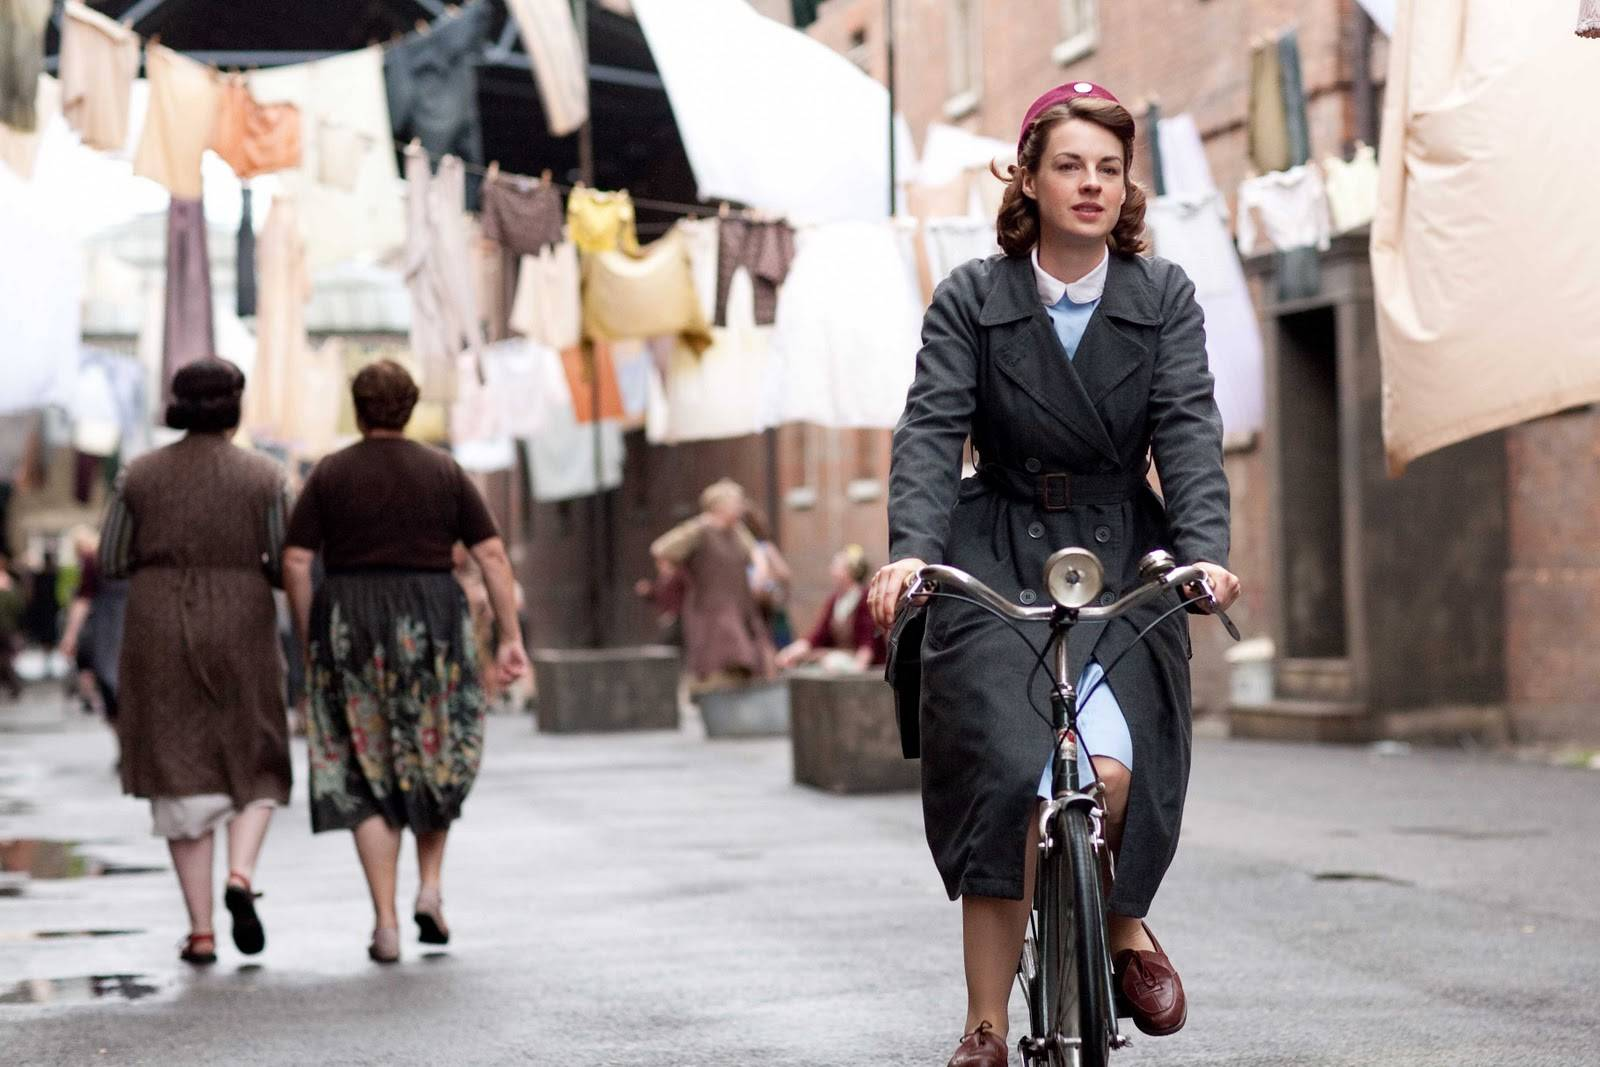 Call the Midwife | What to Read if You Want More British Drama